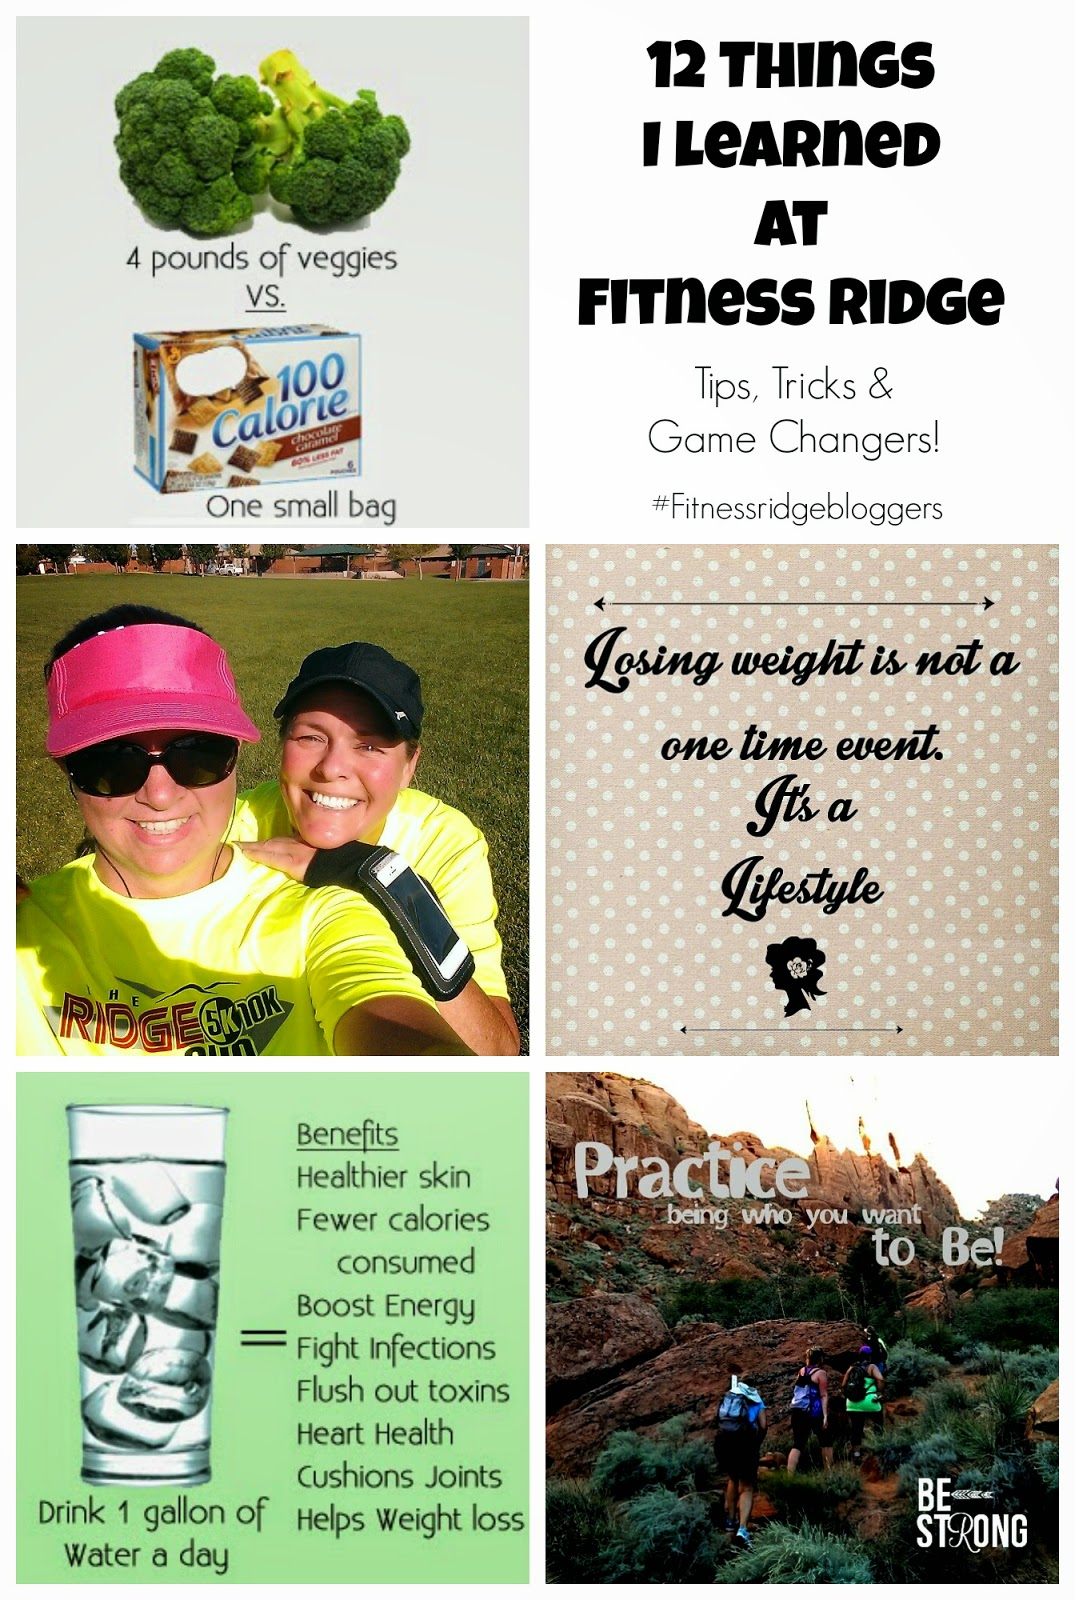 12 things I learned at Fitness Ridge Ranch #fitnessridgebloggers #healthtips